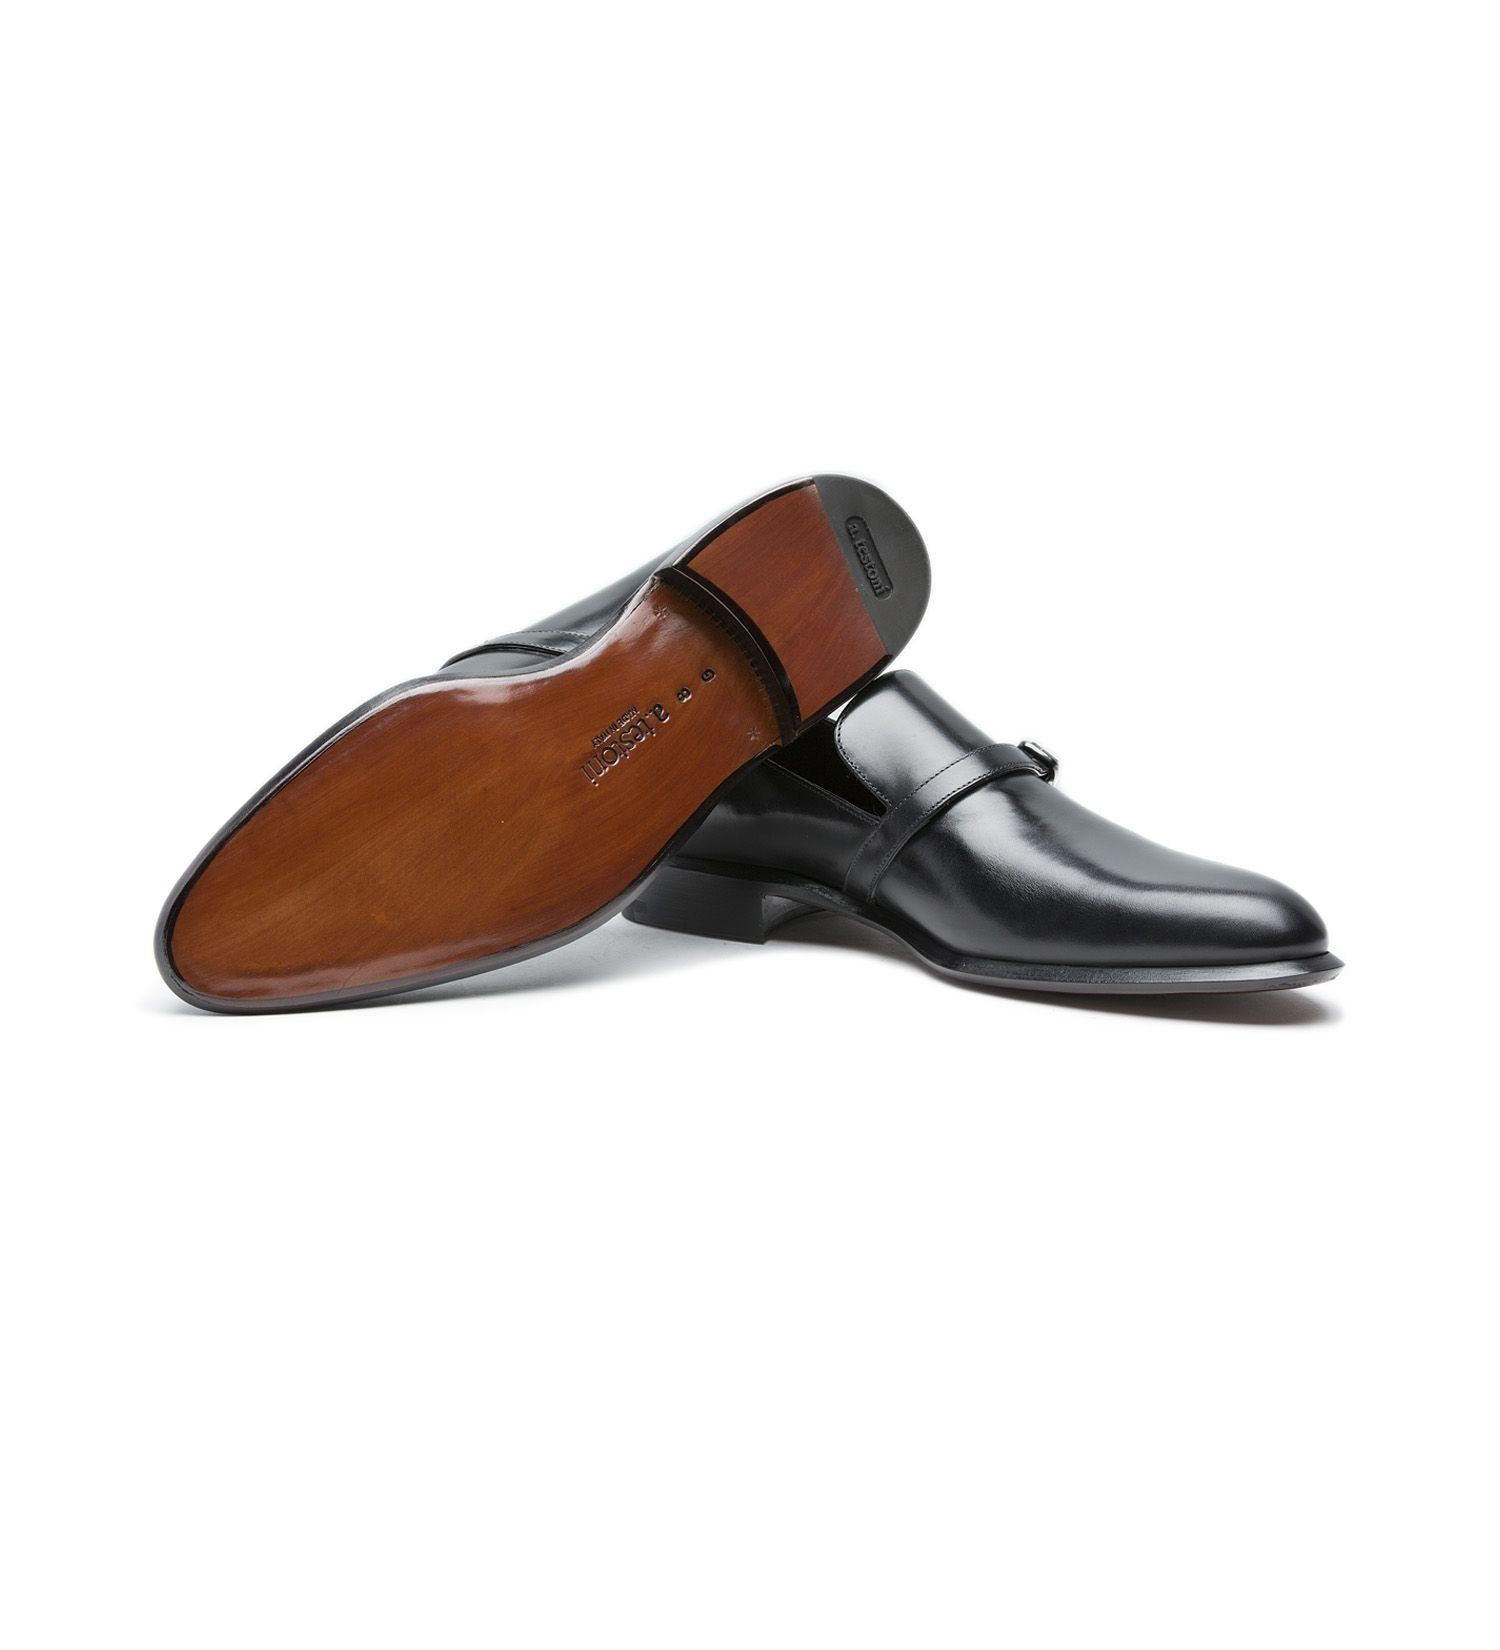 LEATHER SLIP-ON,SHOES,A.TESTONI, | GentRow.com